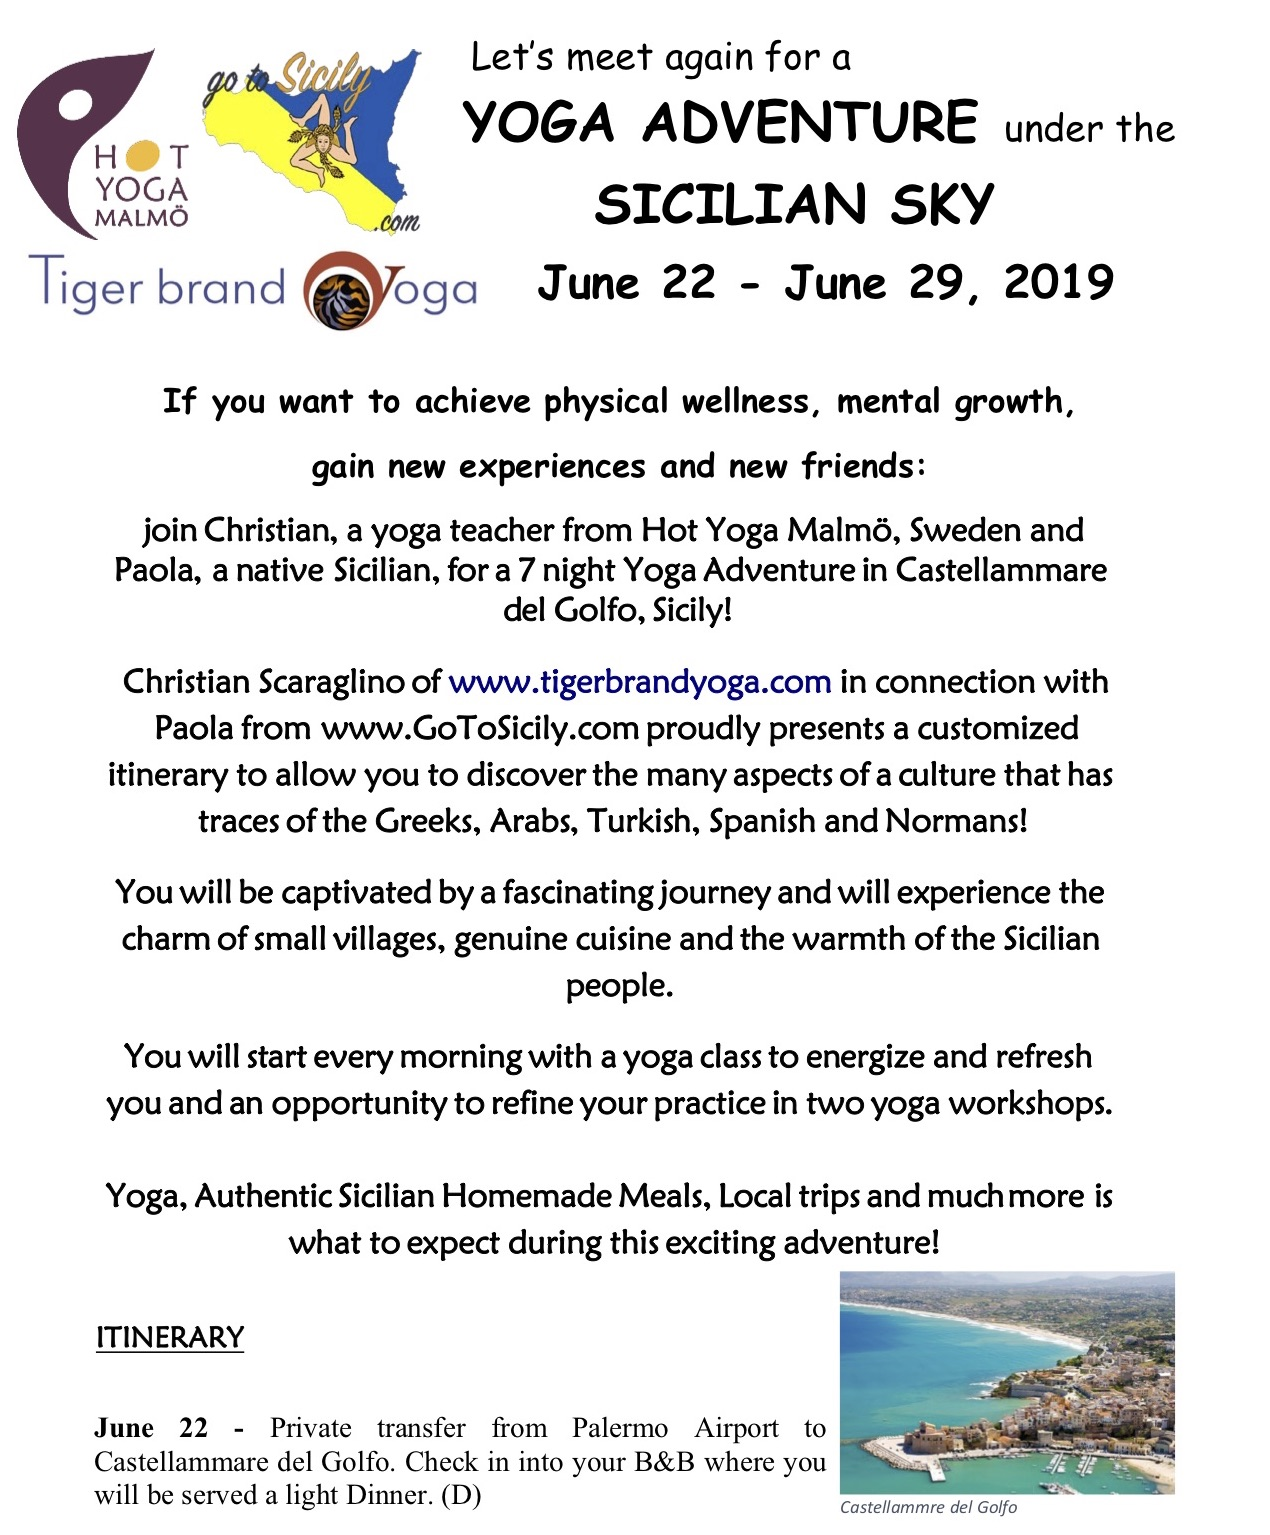 2nd Annual Yoga Adventure under the Sicilian Sky